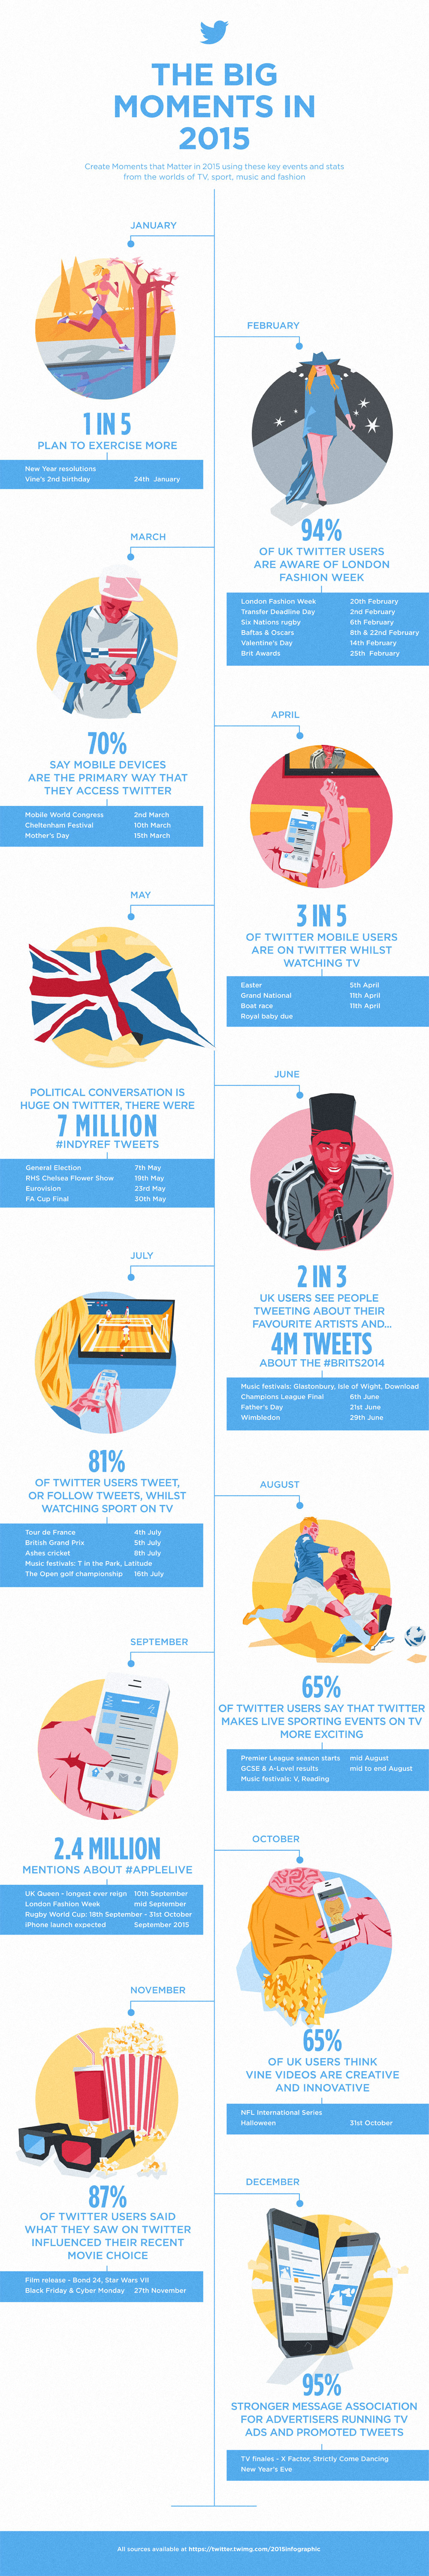 wersm-twitter-big-moments-2015-infographic